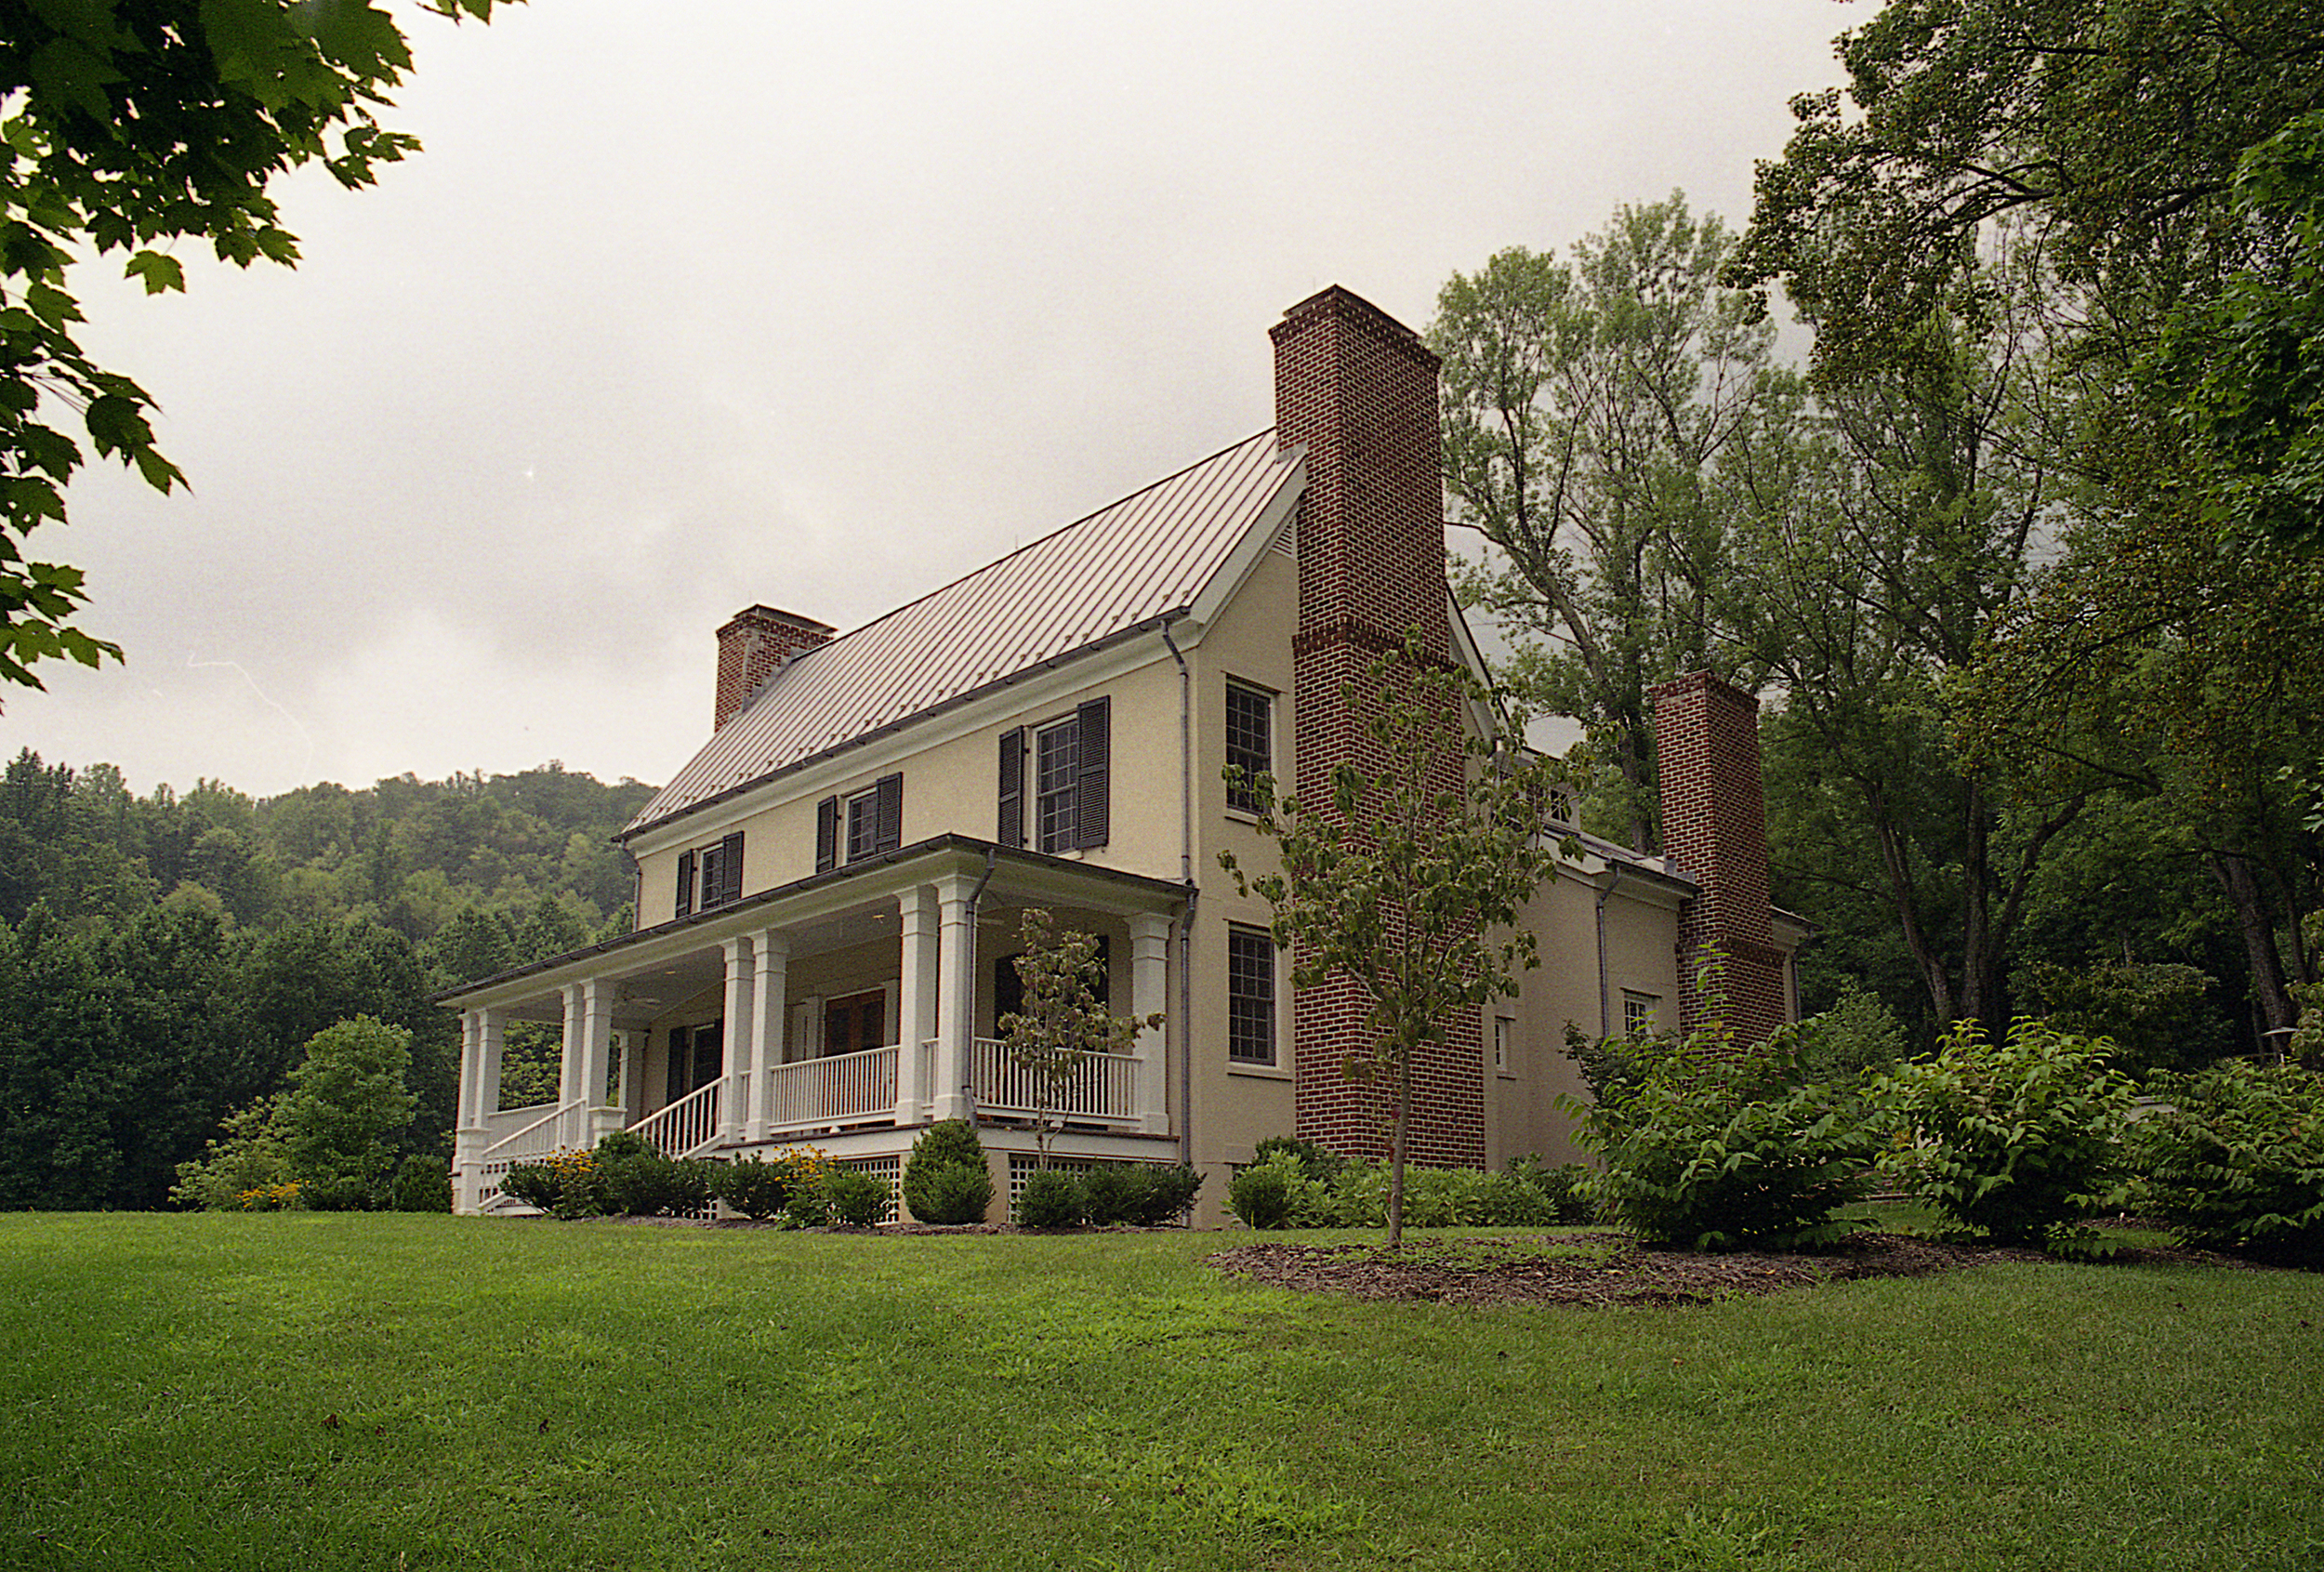 Catrock Mountain    Residence   |   Nelson County, Virginia